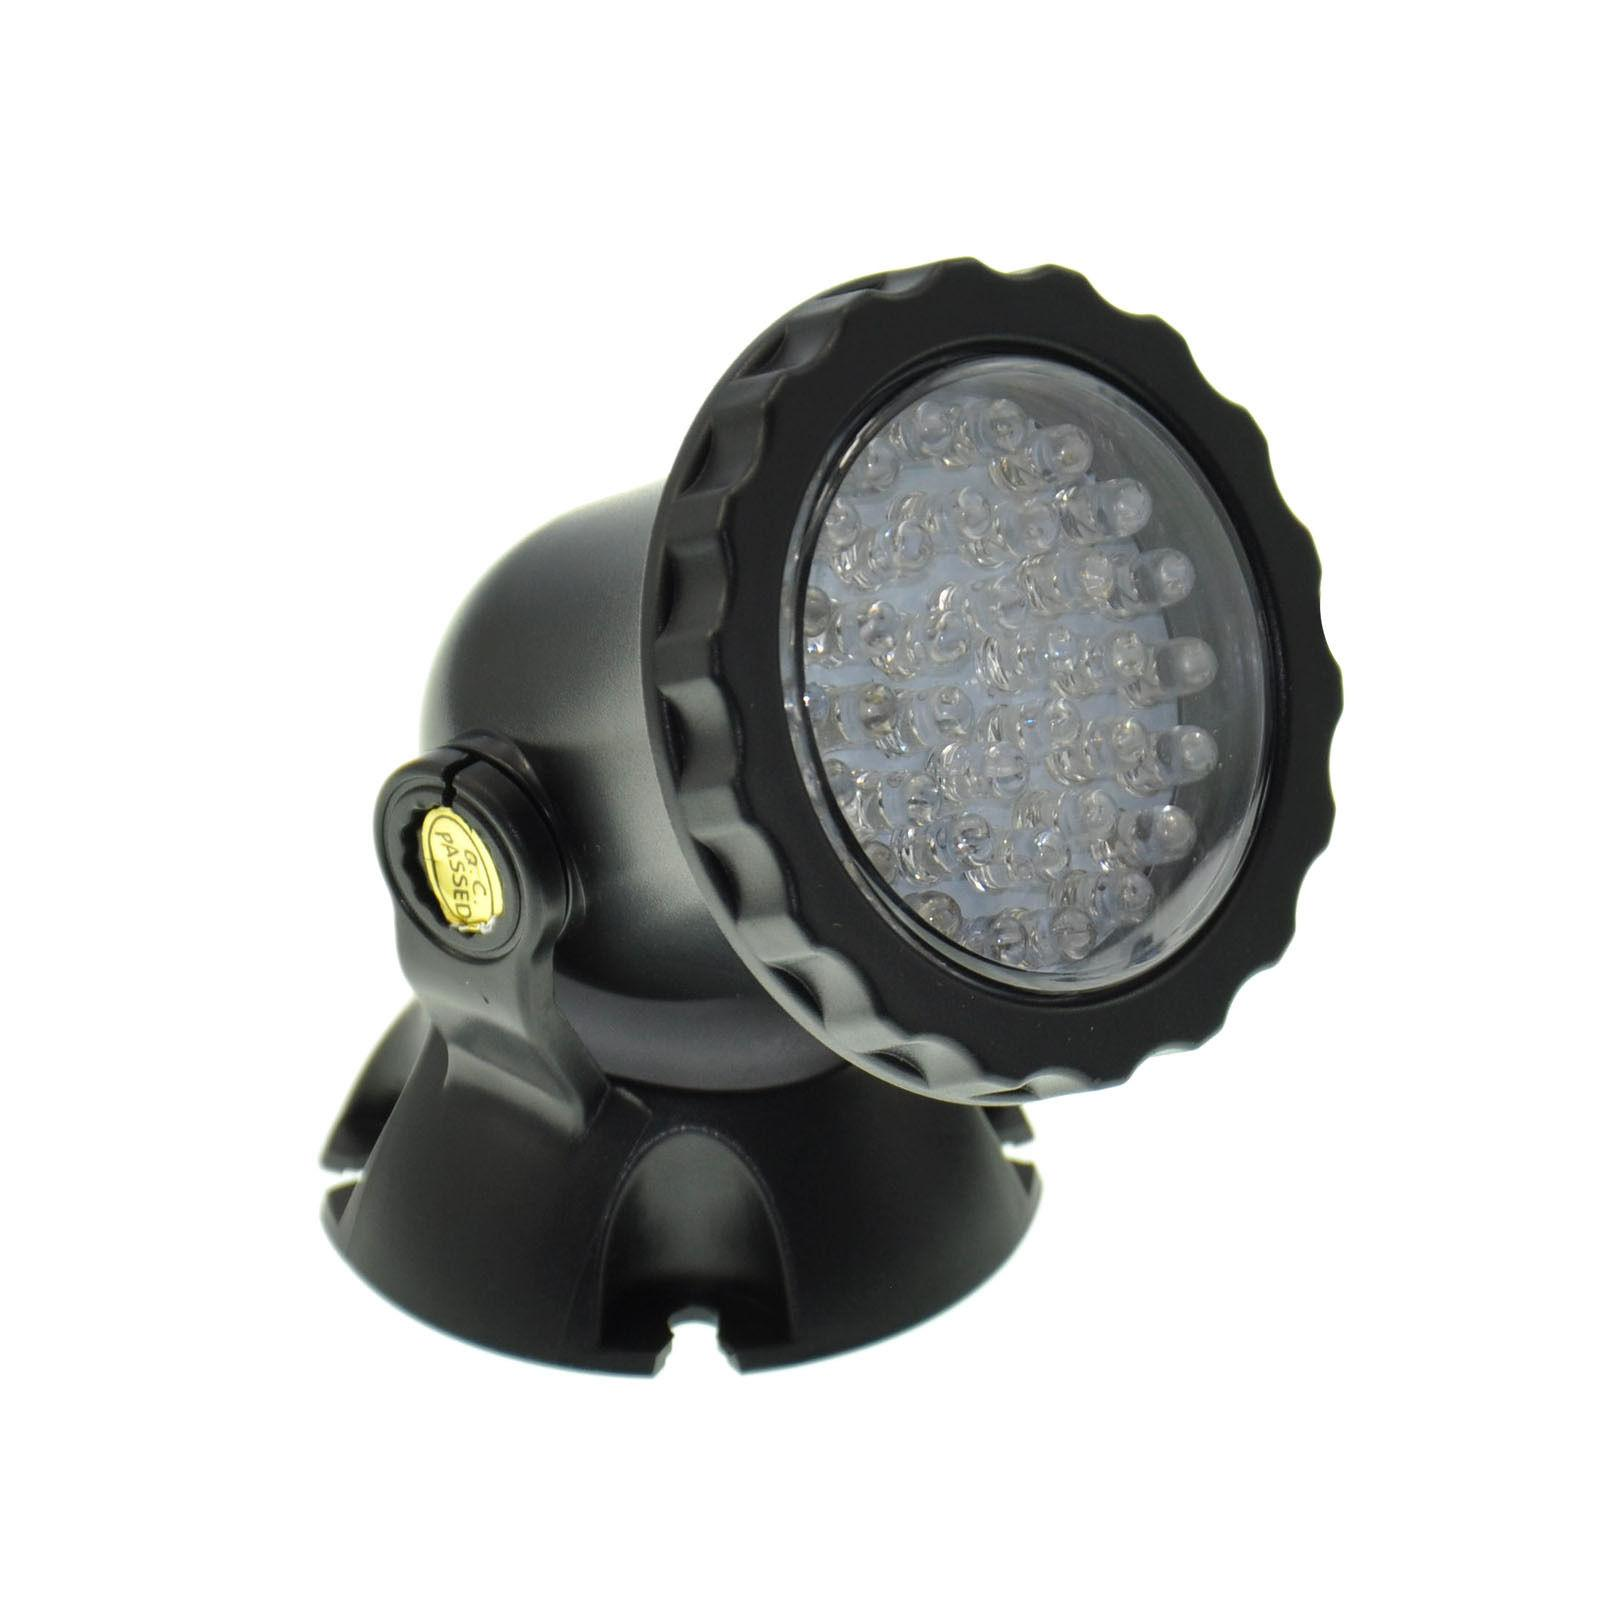 Eclairage Led Etanche Pour Fontaine Acheter 36 Led Submersible Underwater Light Aquarium Led